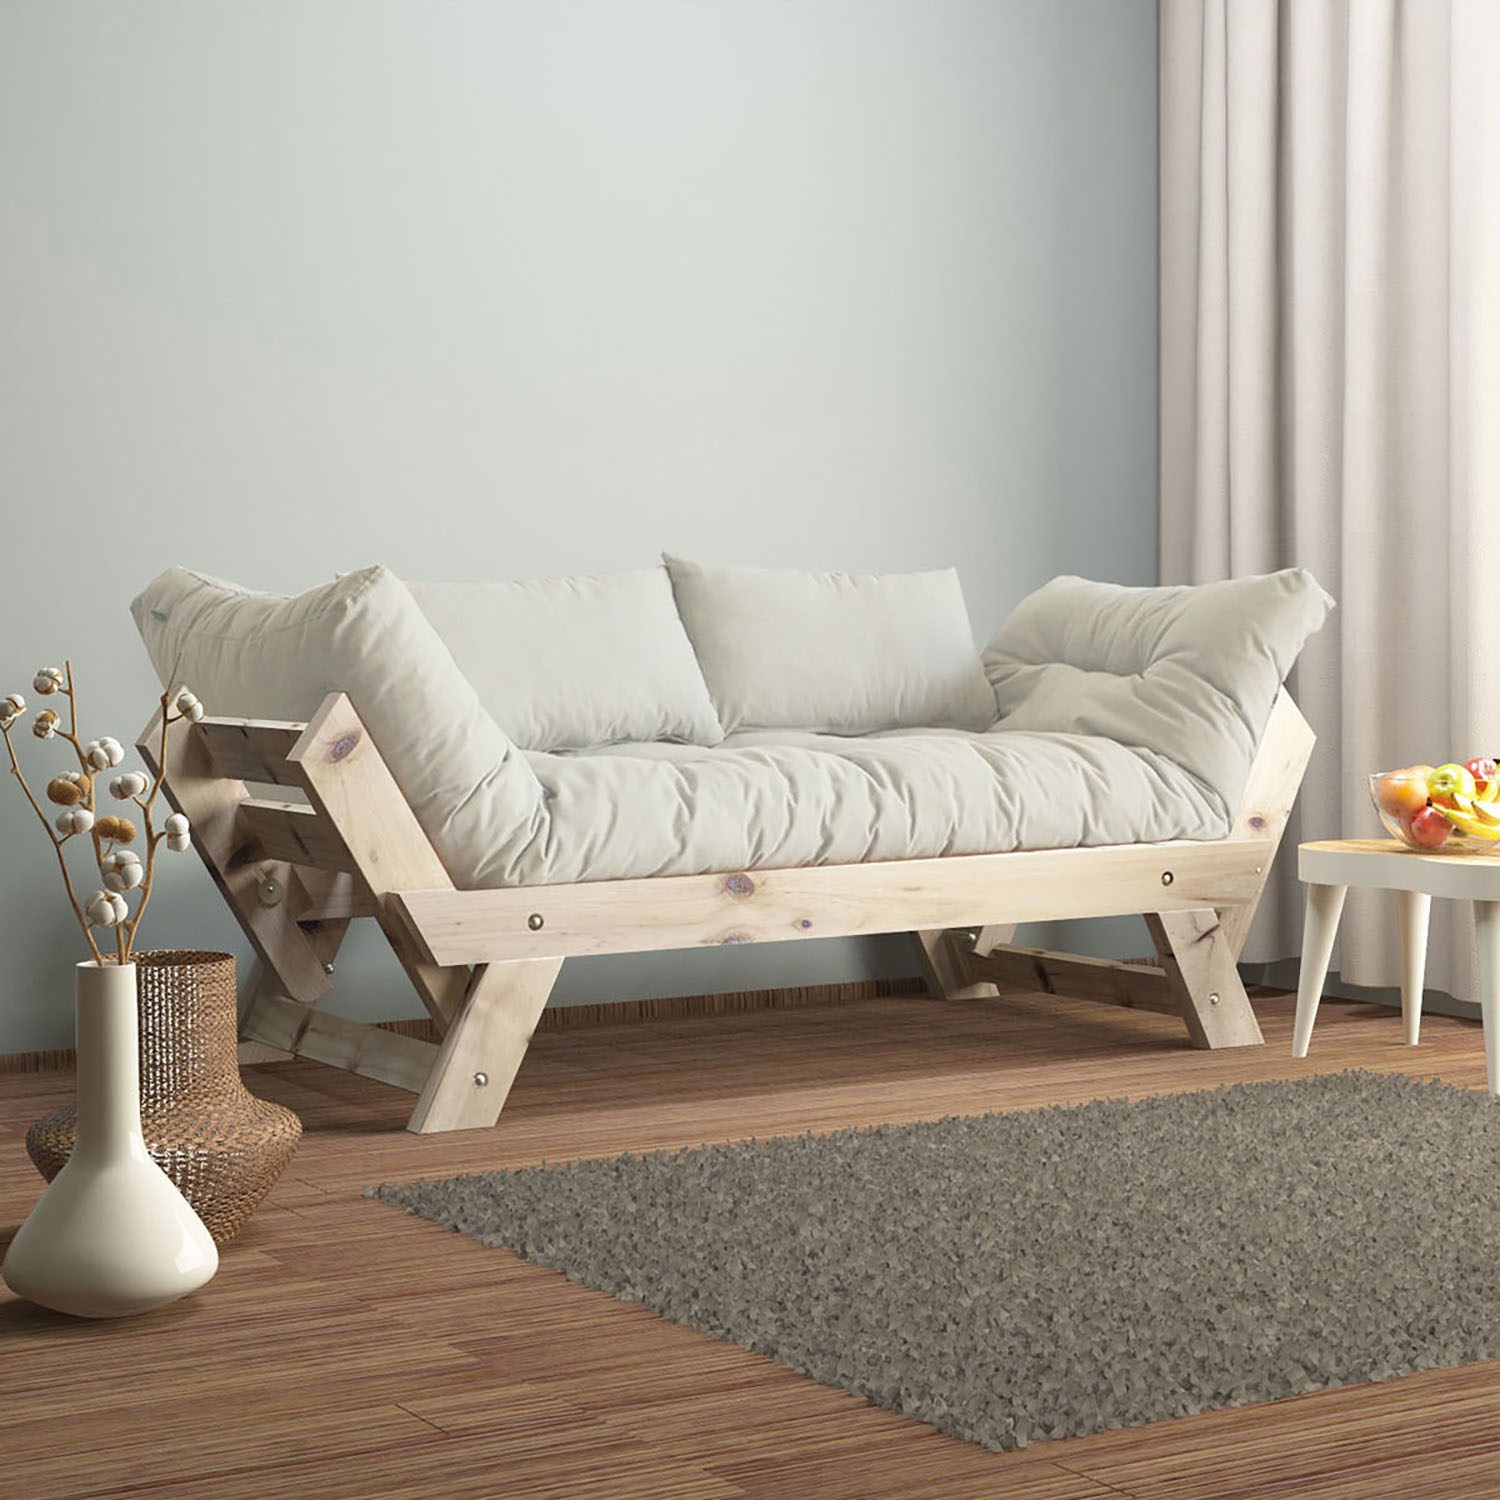 Armchair Bed For Singles Linen Fabric